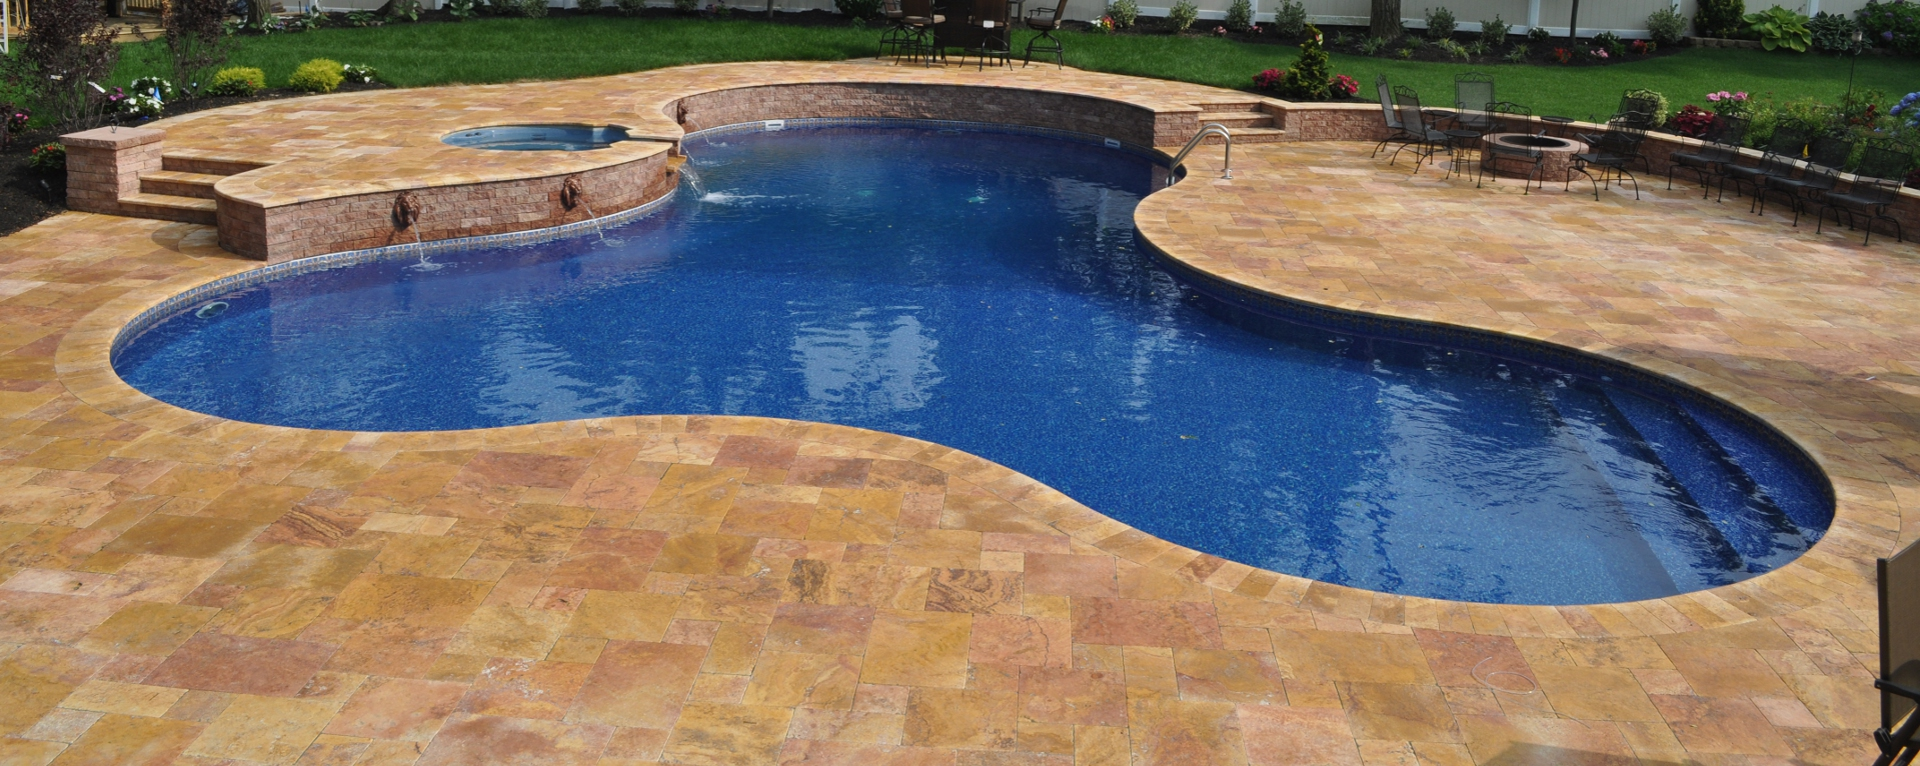 inground swimming pools massapequa park ny 11762 builders contractors company deck and patio natural stones